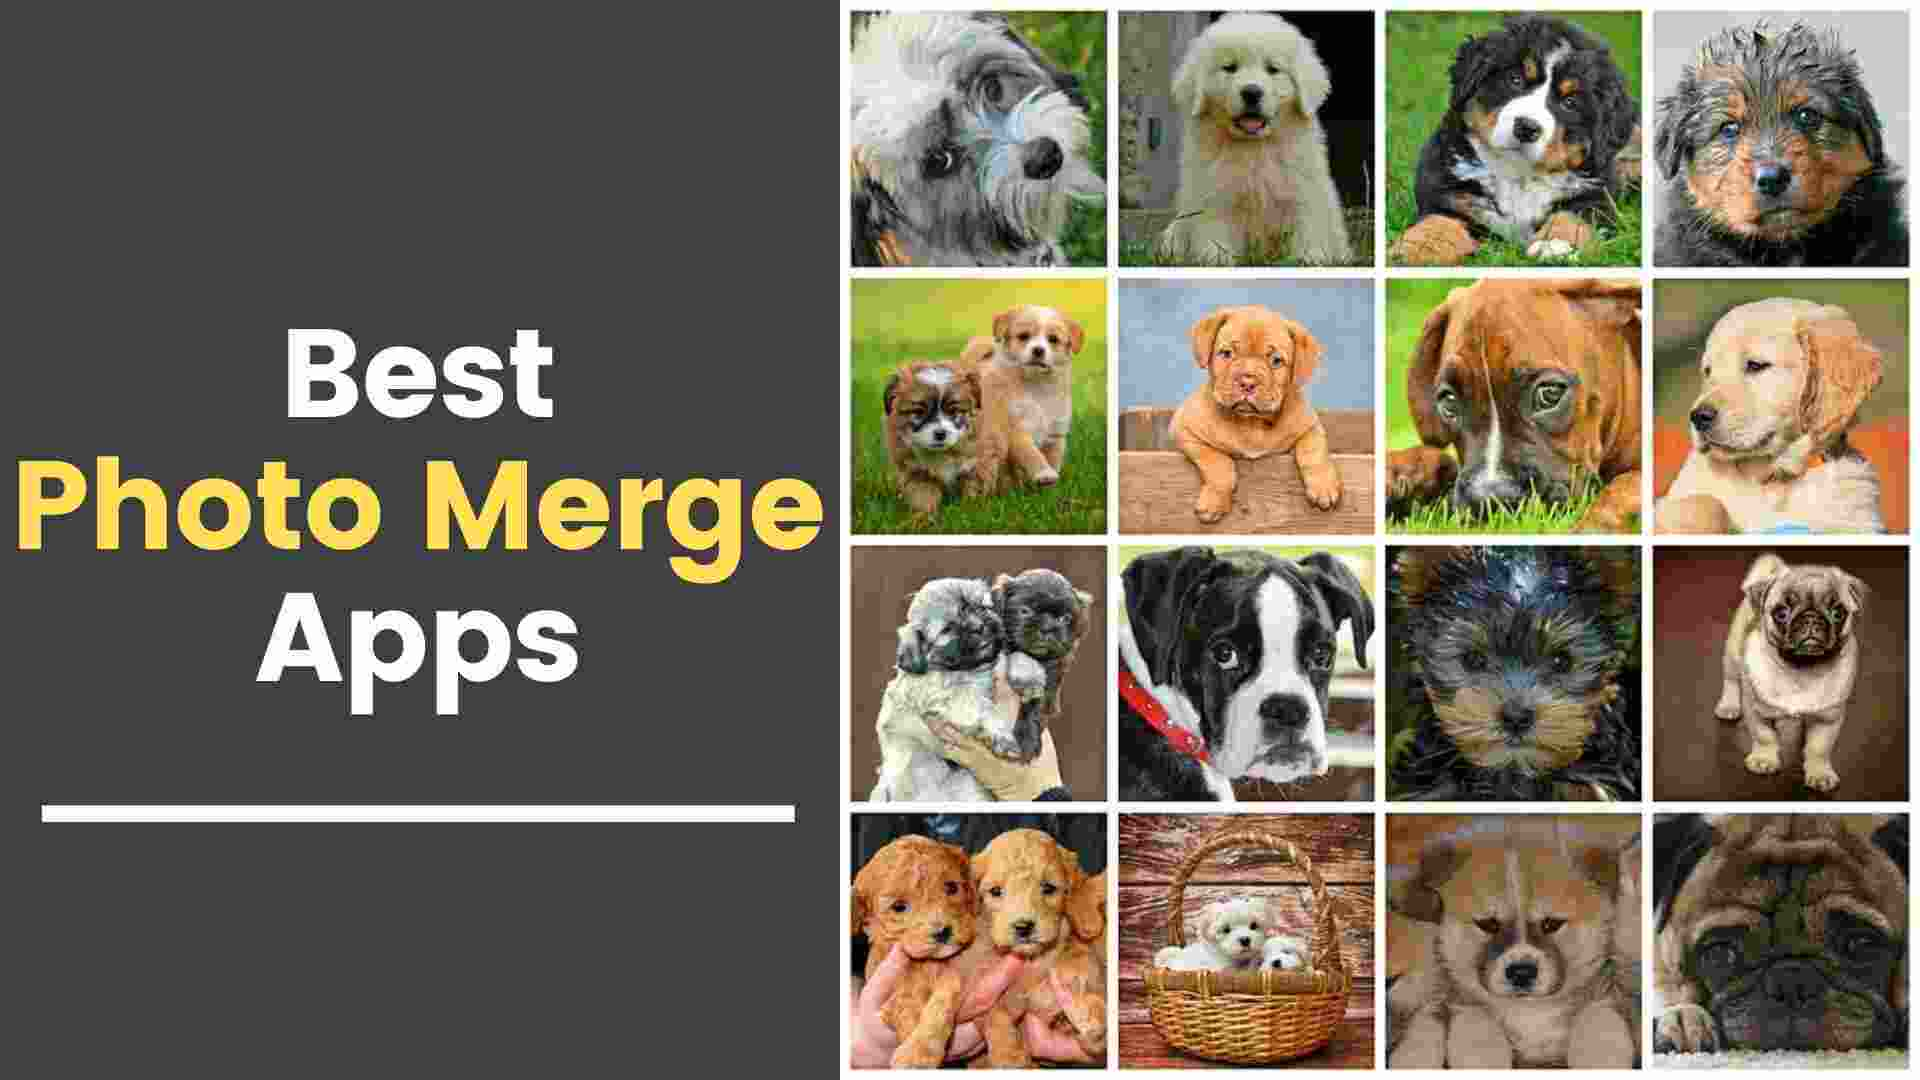 Best Photo Merge Apps For Combining Photos